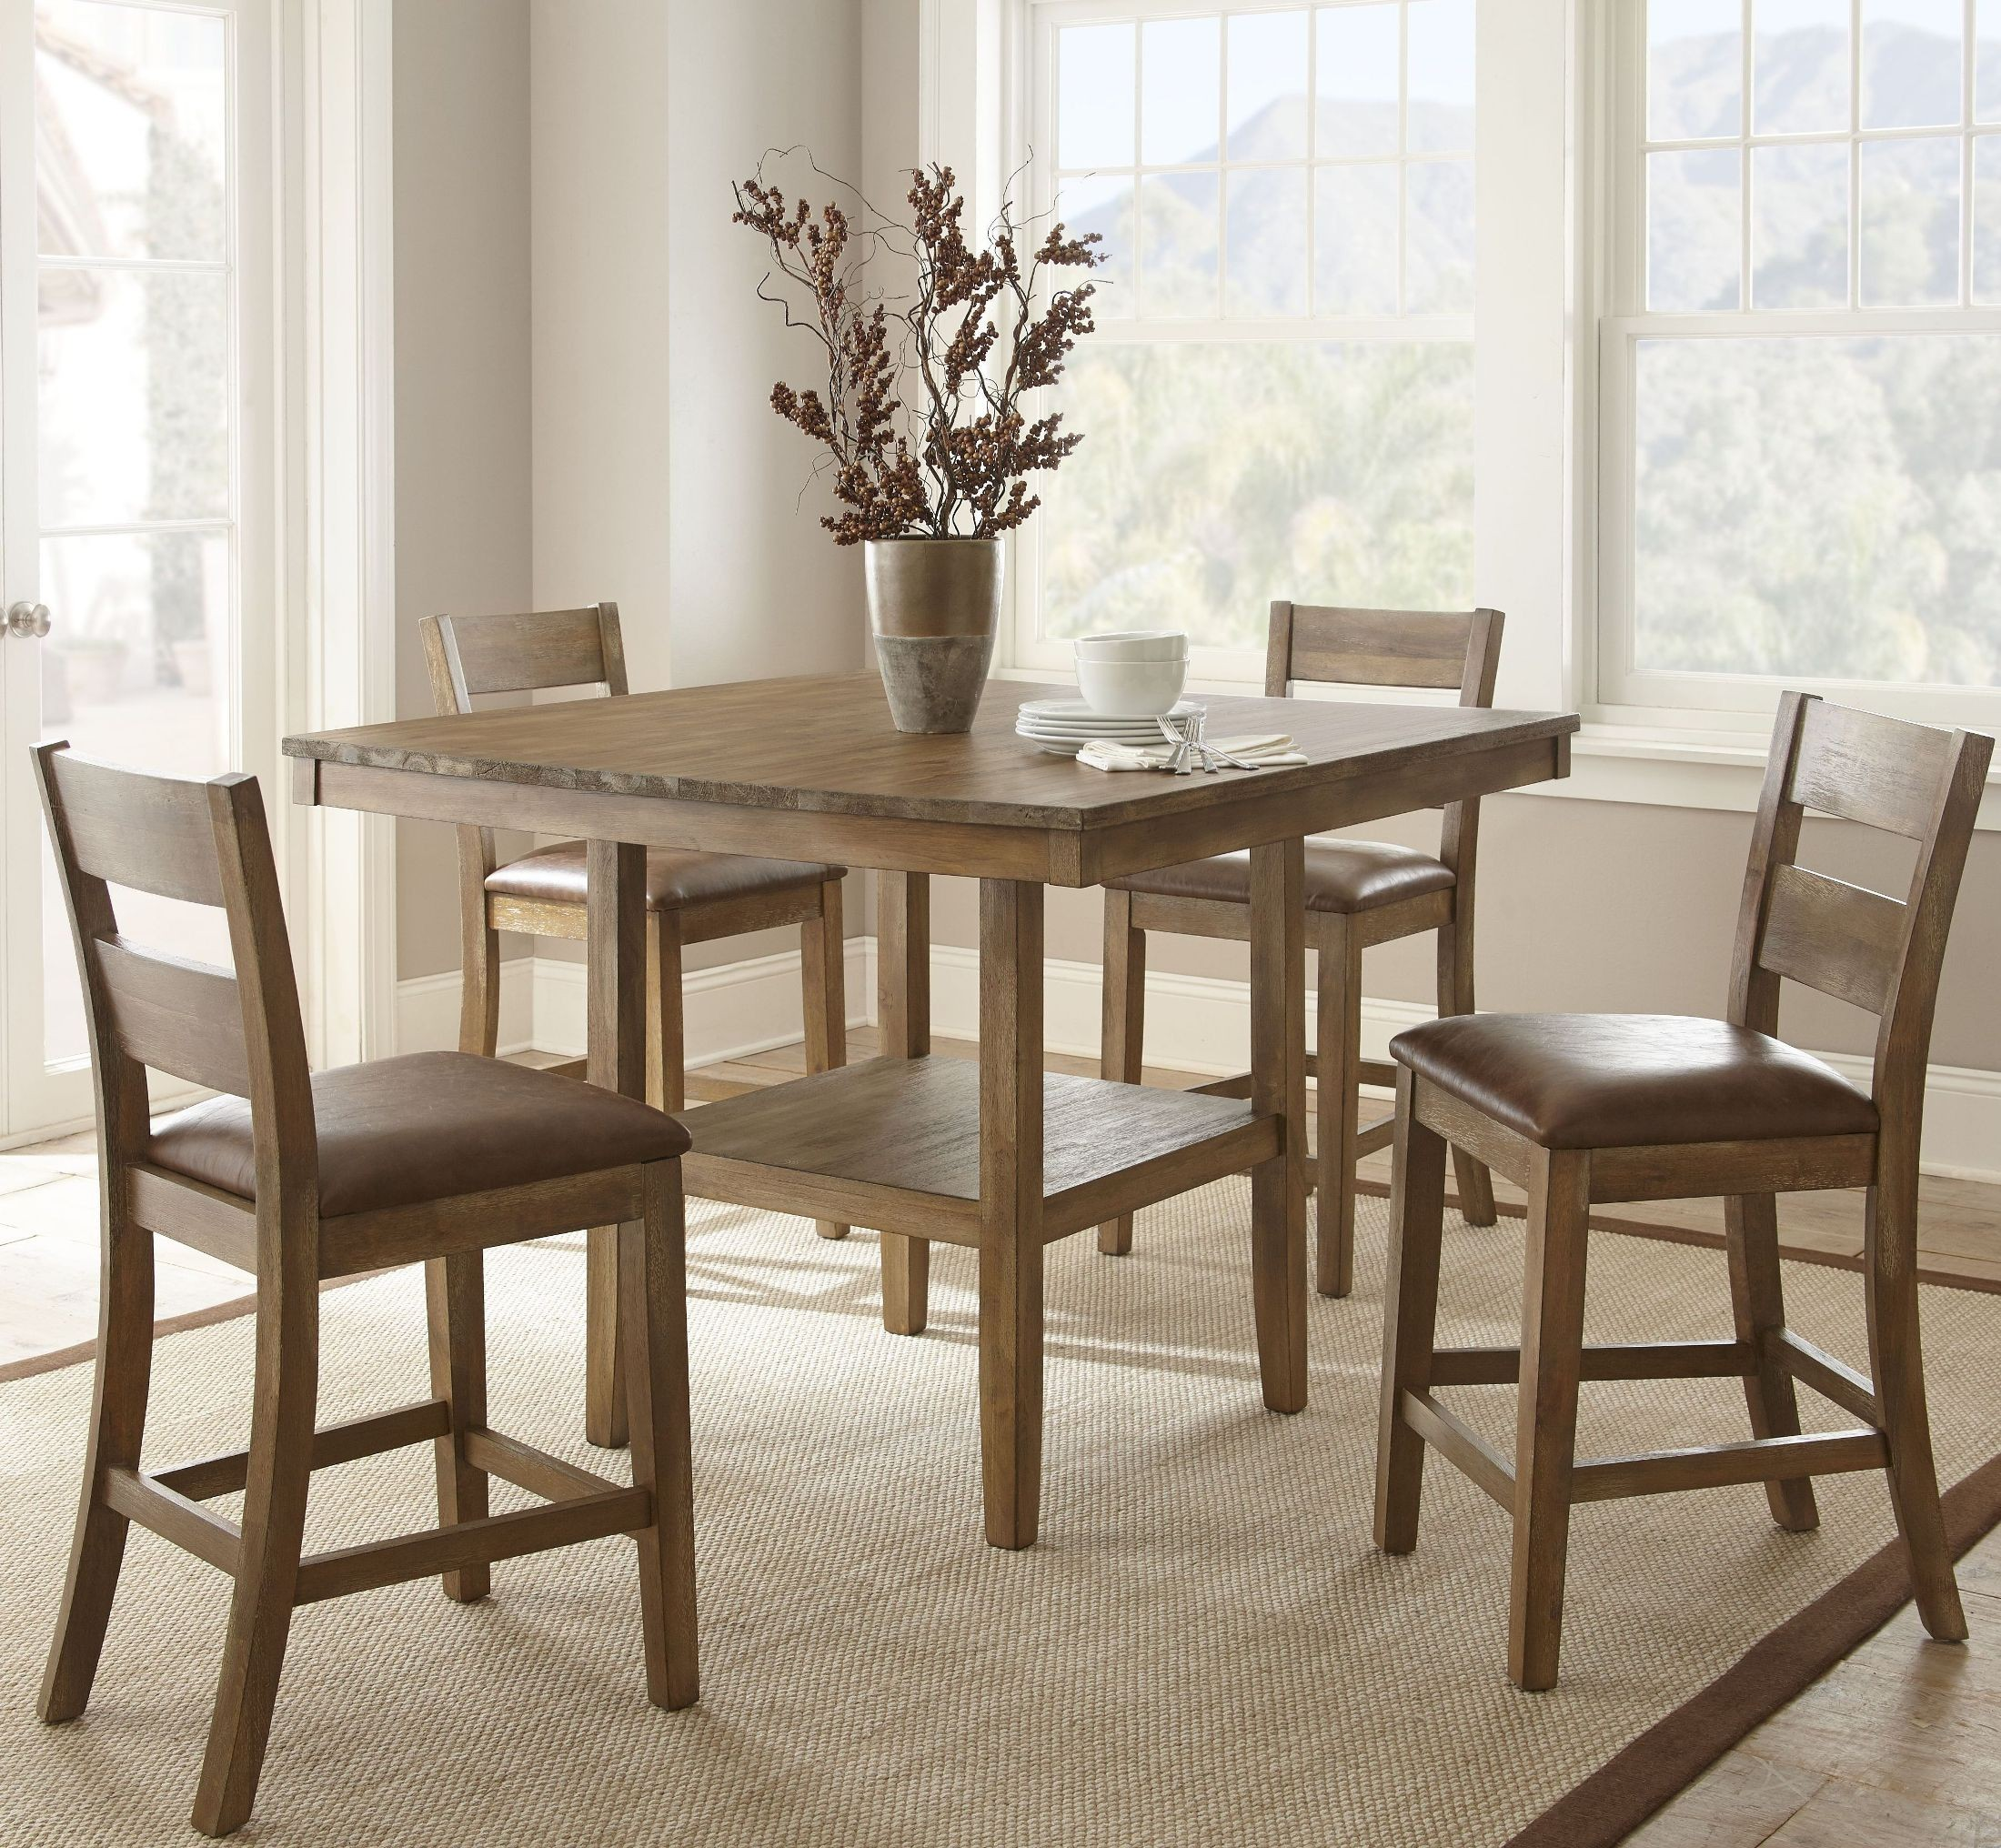 Dining Room Sets Rustic: Cambrey Rustic Honey Counter Height Dining Room Set